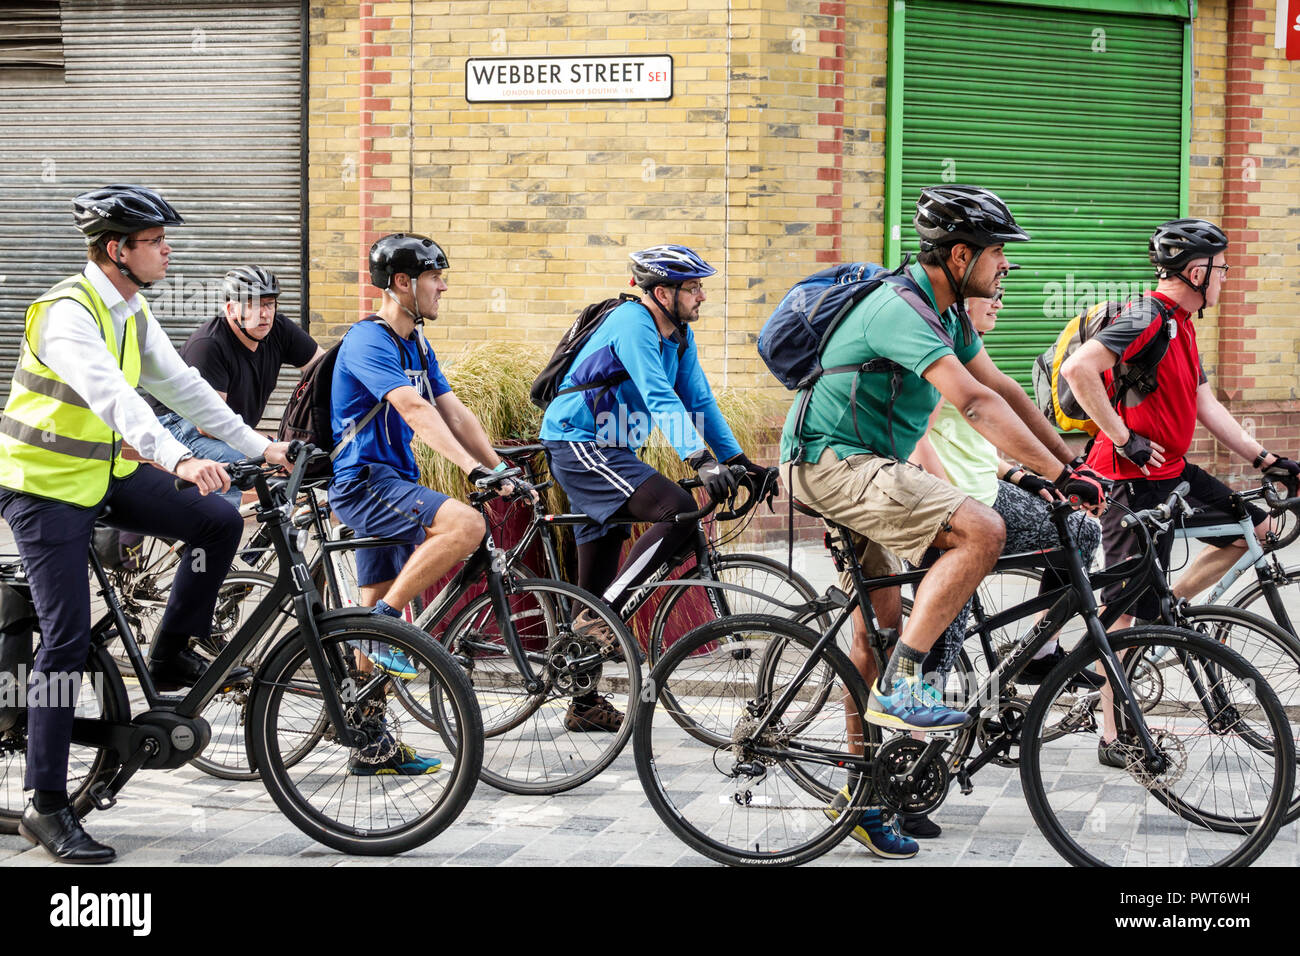 London England United Kingdom Great Britain Lambeth Webber Street bicycle bike lane work commuters riding riders bicycles helmets man rush hour traffi - Stock Image